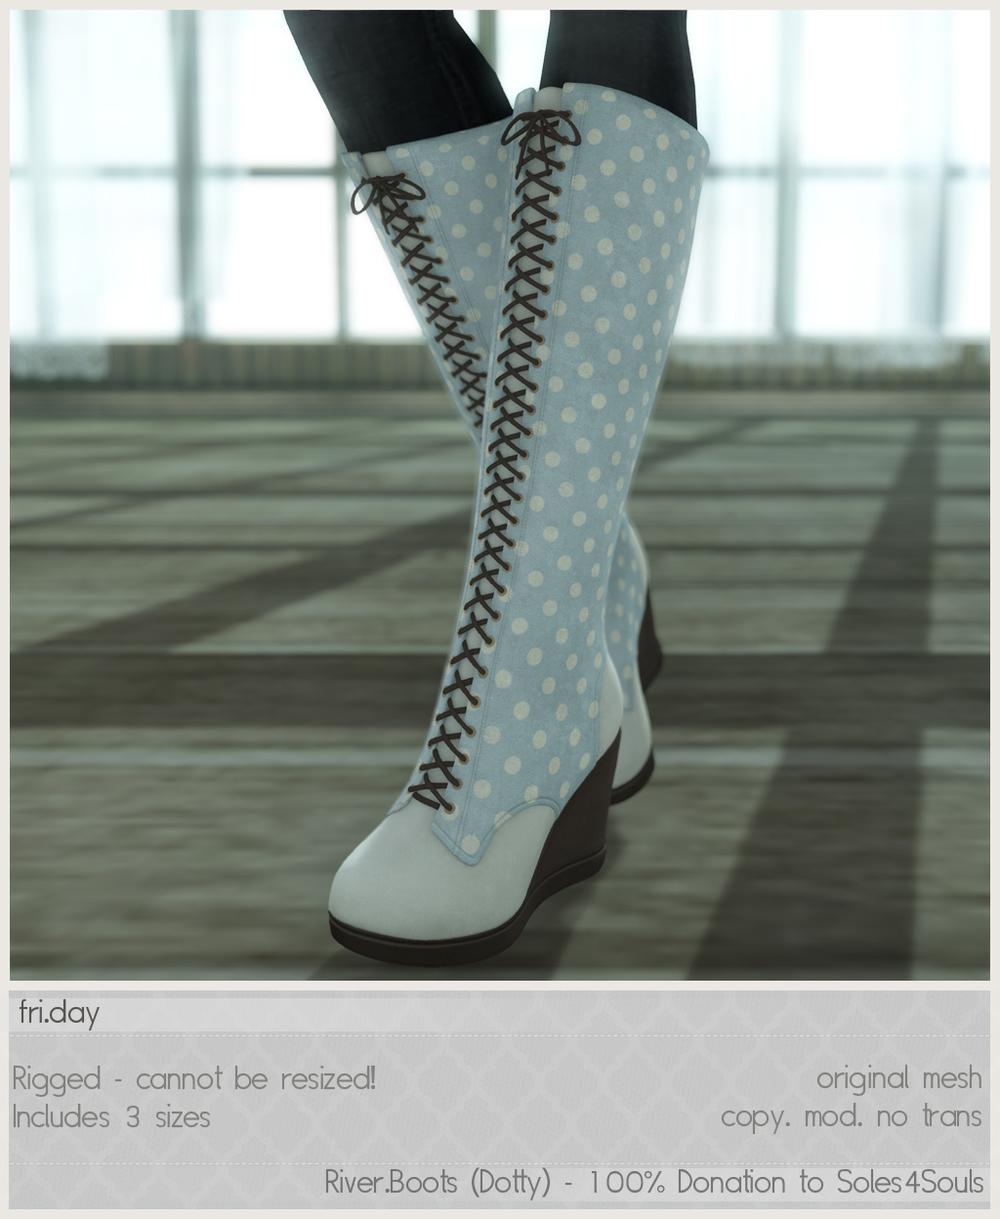 fri - River Boots Ad (Dotty) - Donation.jpg